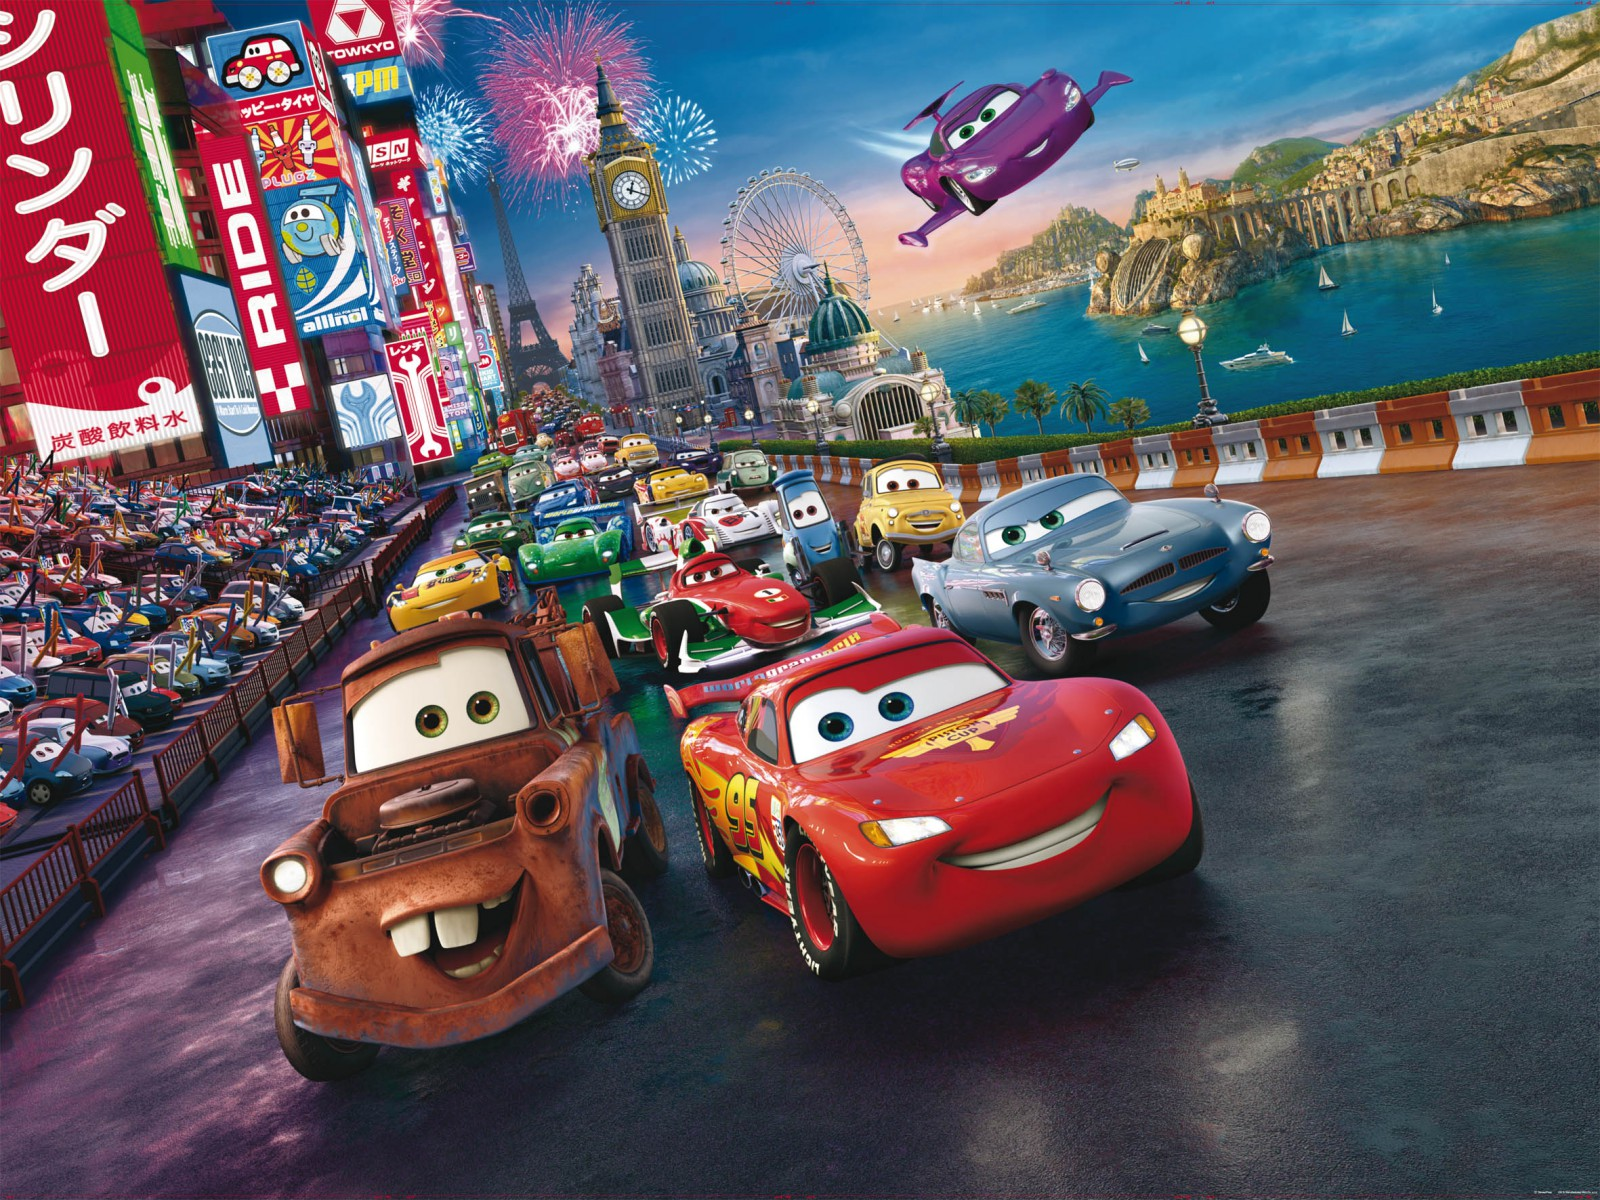 XXL Photo Wallpaper Mural Disney Cars Lightning McQueen